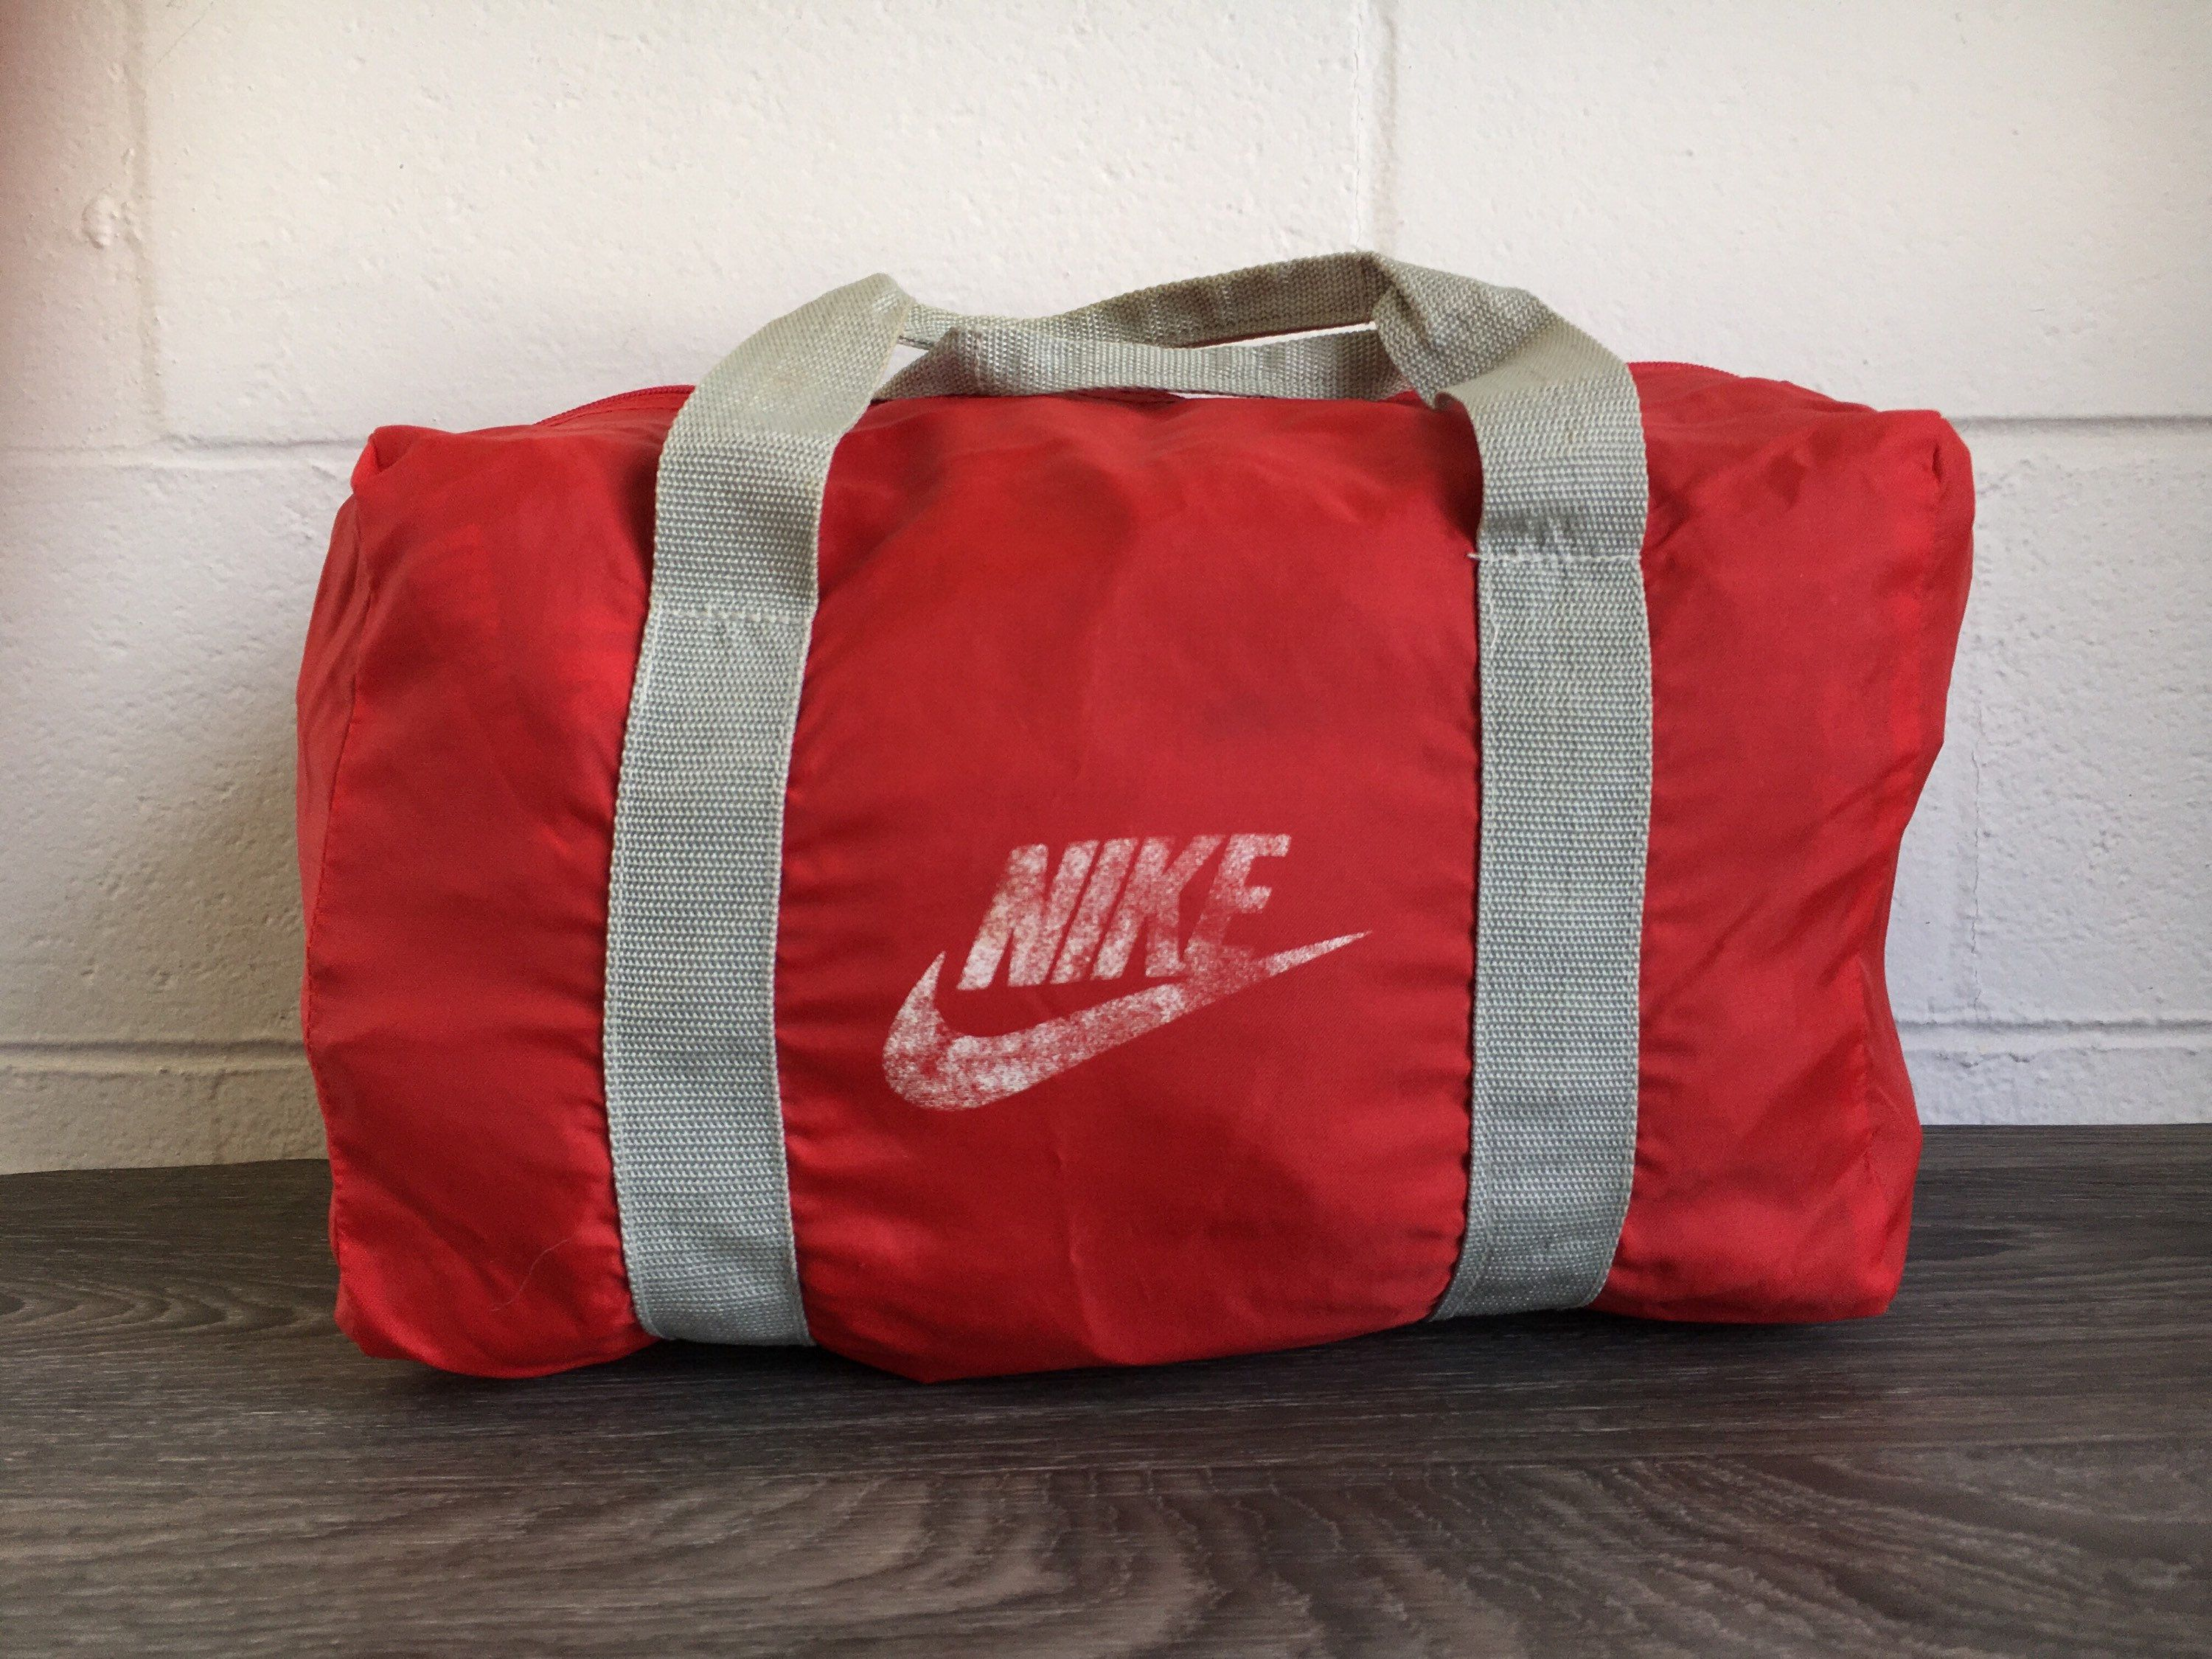 b20a41fbc391 NIKE DUFFLE Bag 80 s Vintage Grey Tag Gym Travel Pack Classic Red Sports  Overnight by sweetVTGtshirt on Etsy